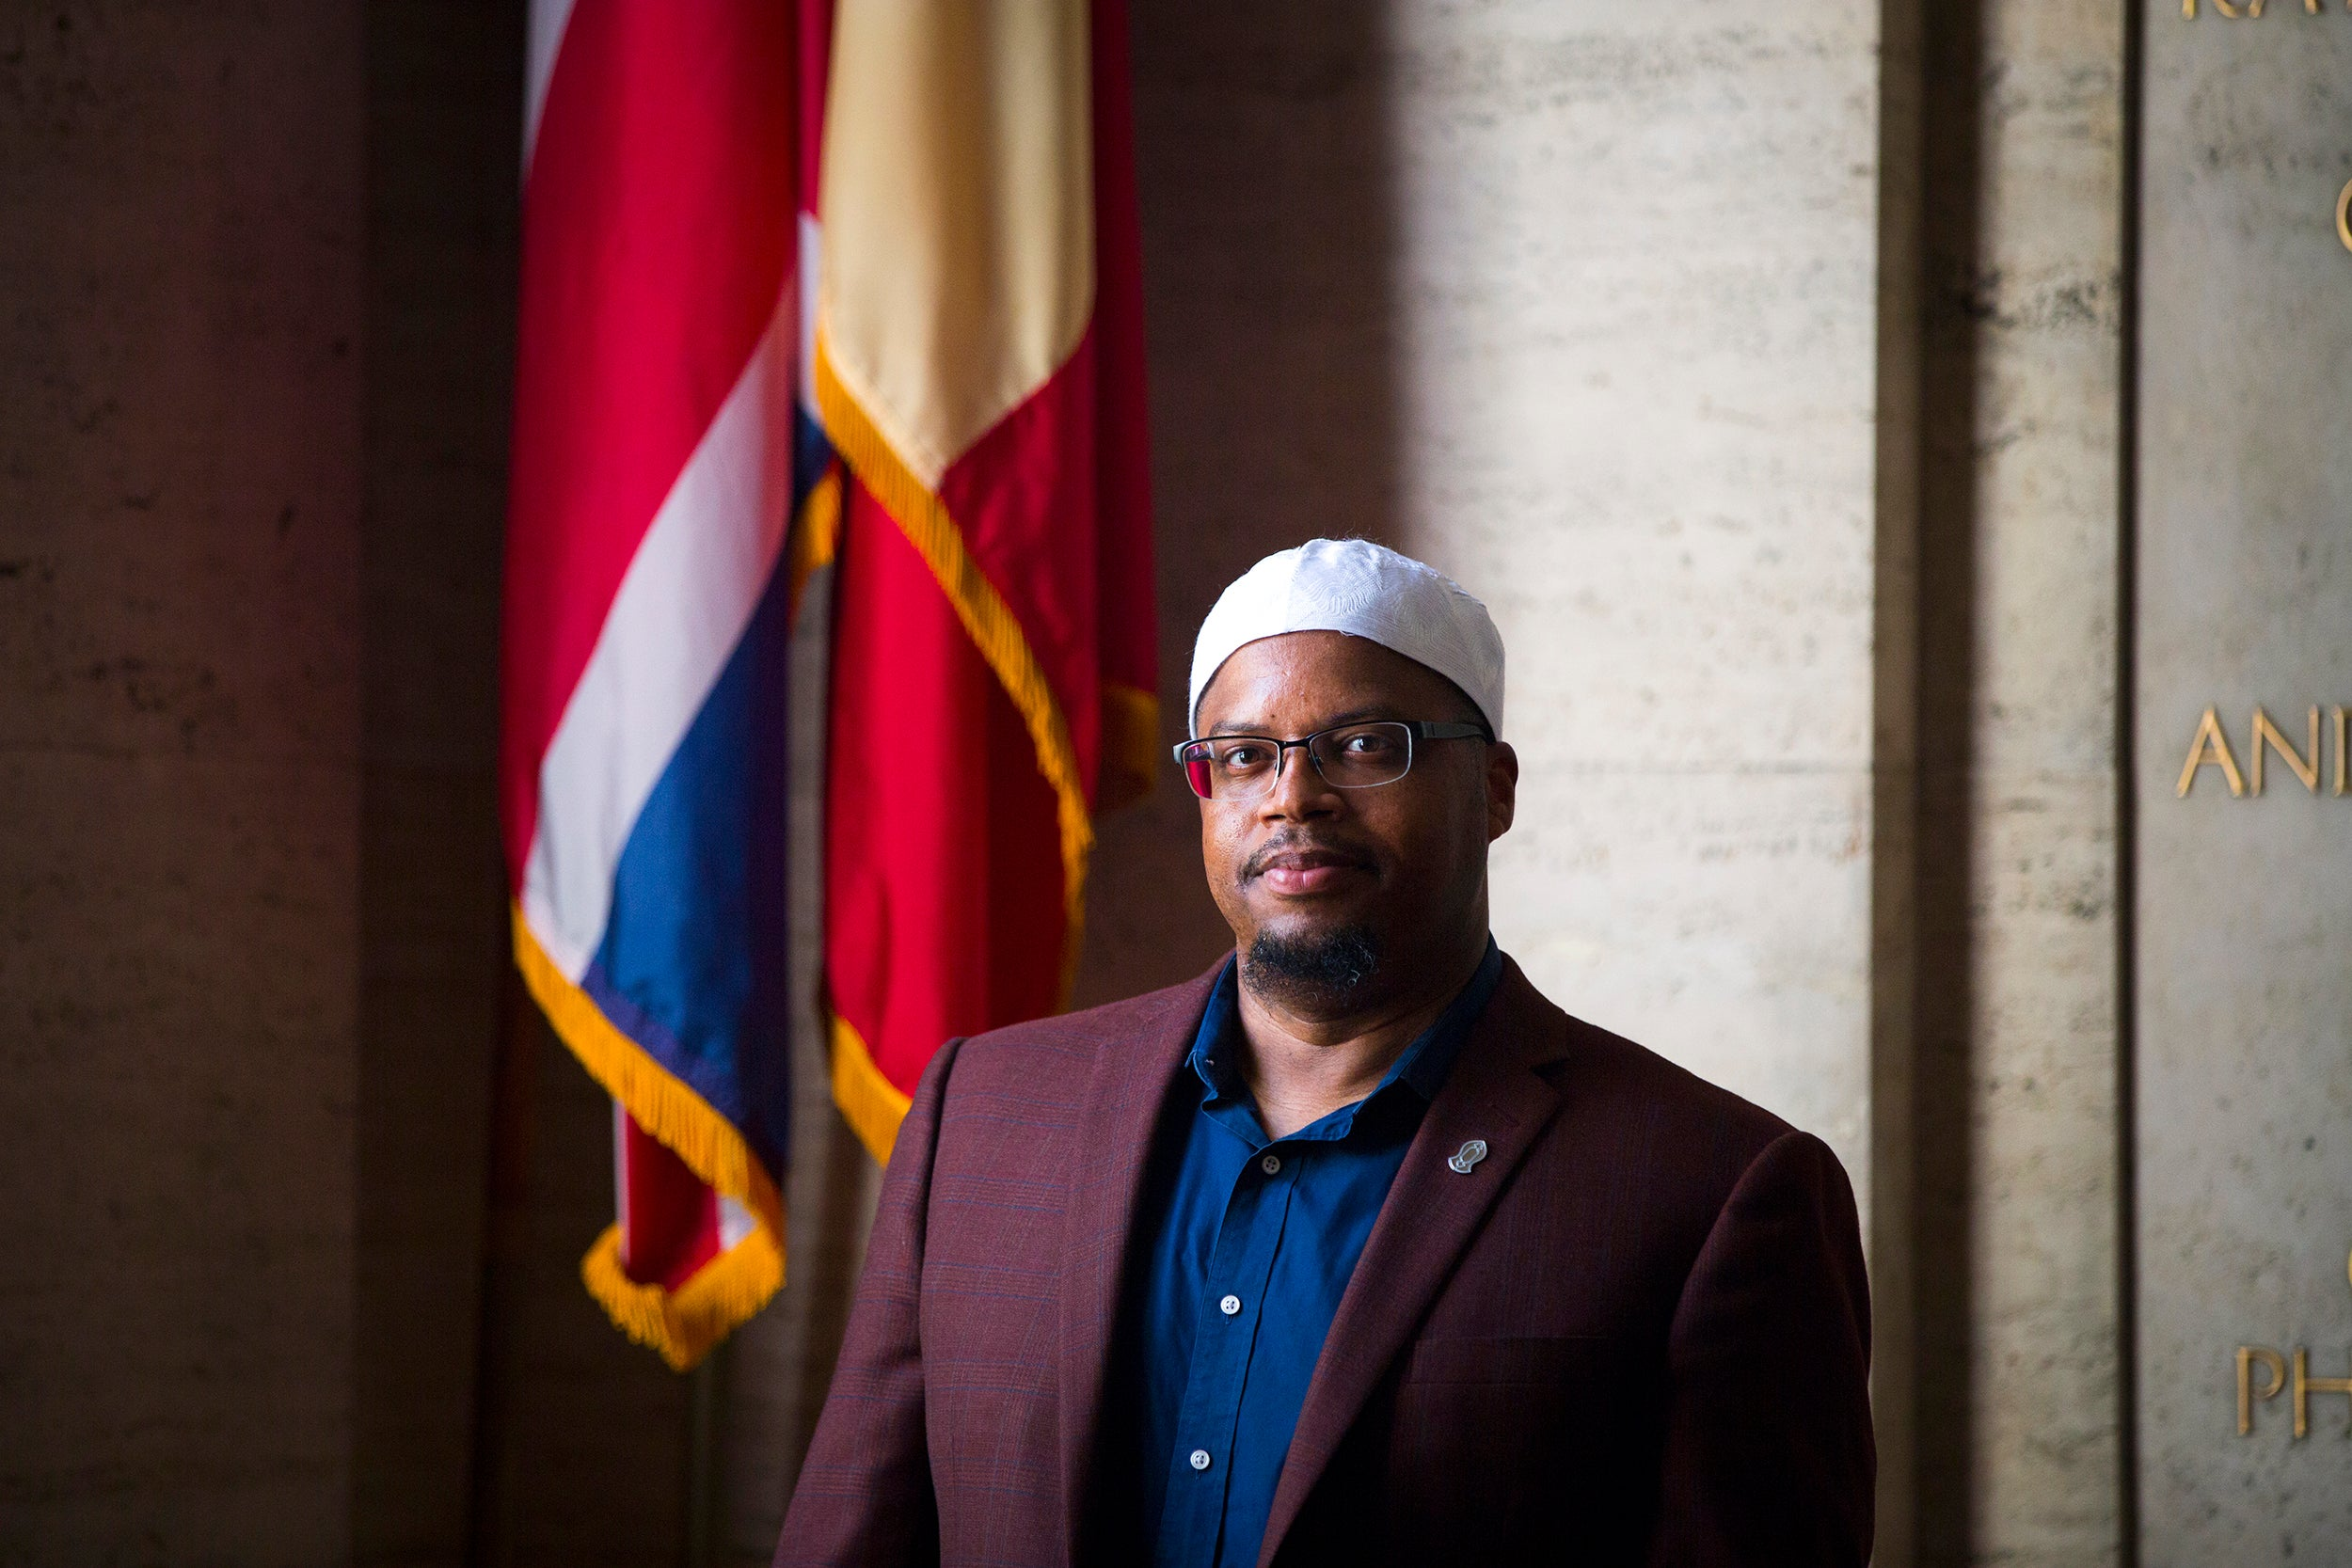 """How do you treat people, and how do you advocate for good treatment?"" Khalil Abdur-Rashid, Harvard's first full-time Muslim chaplain, says he seeks to help students ""understand Islam as a lived experience."""